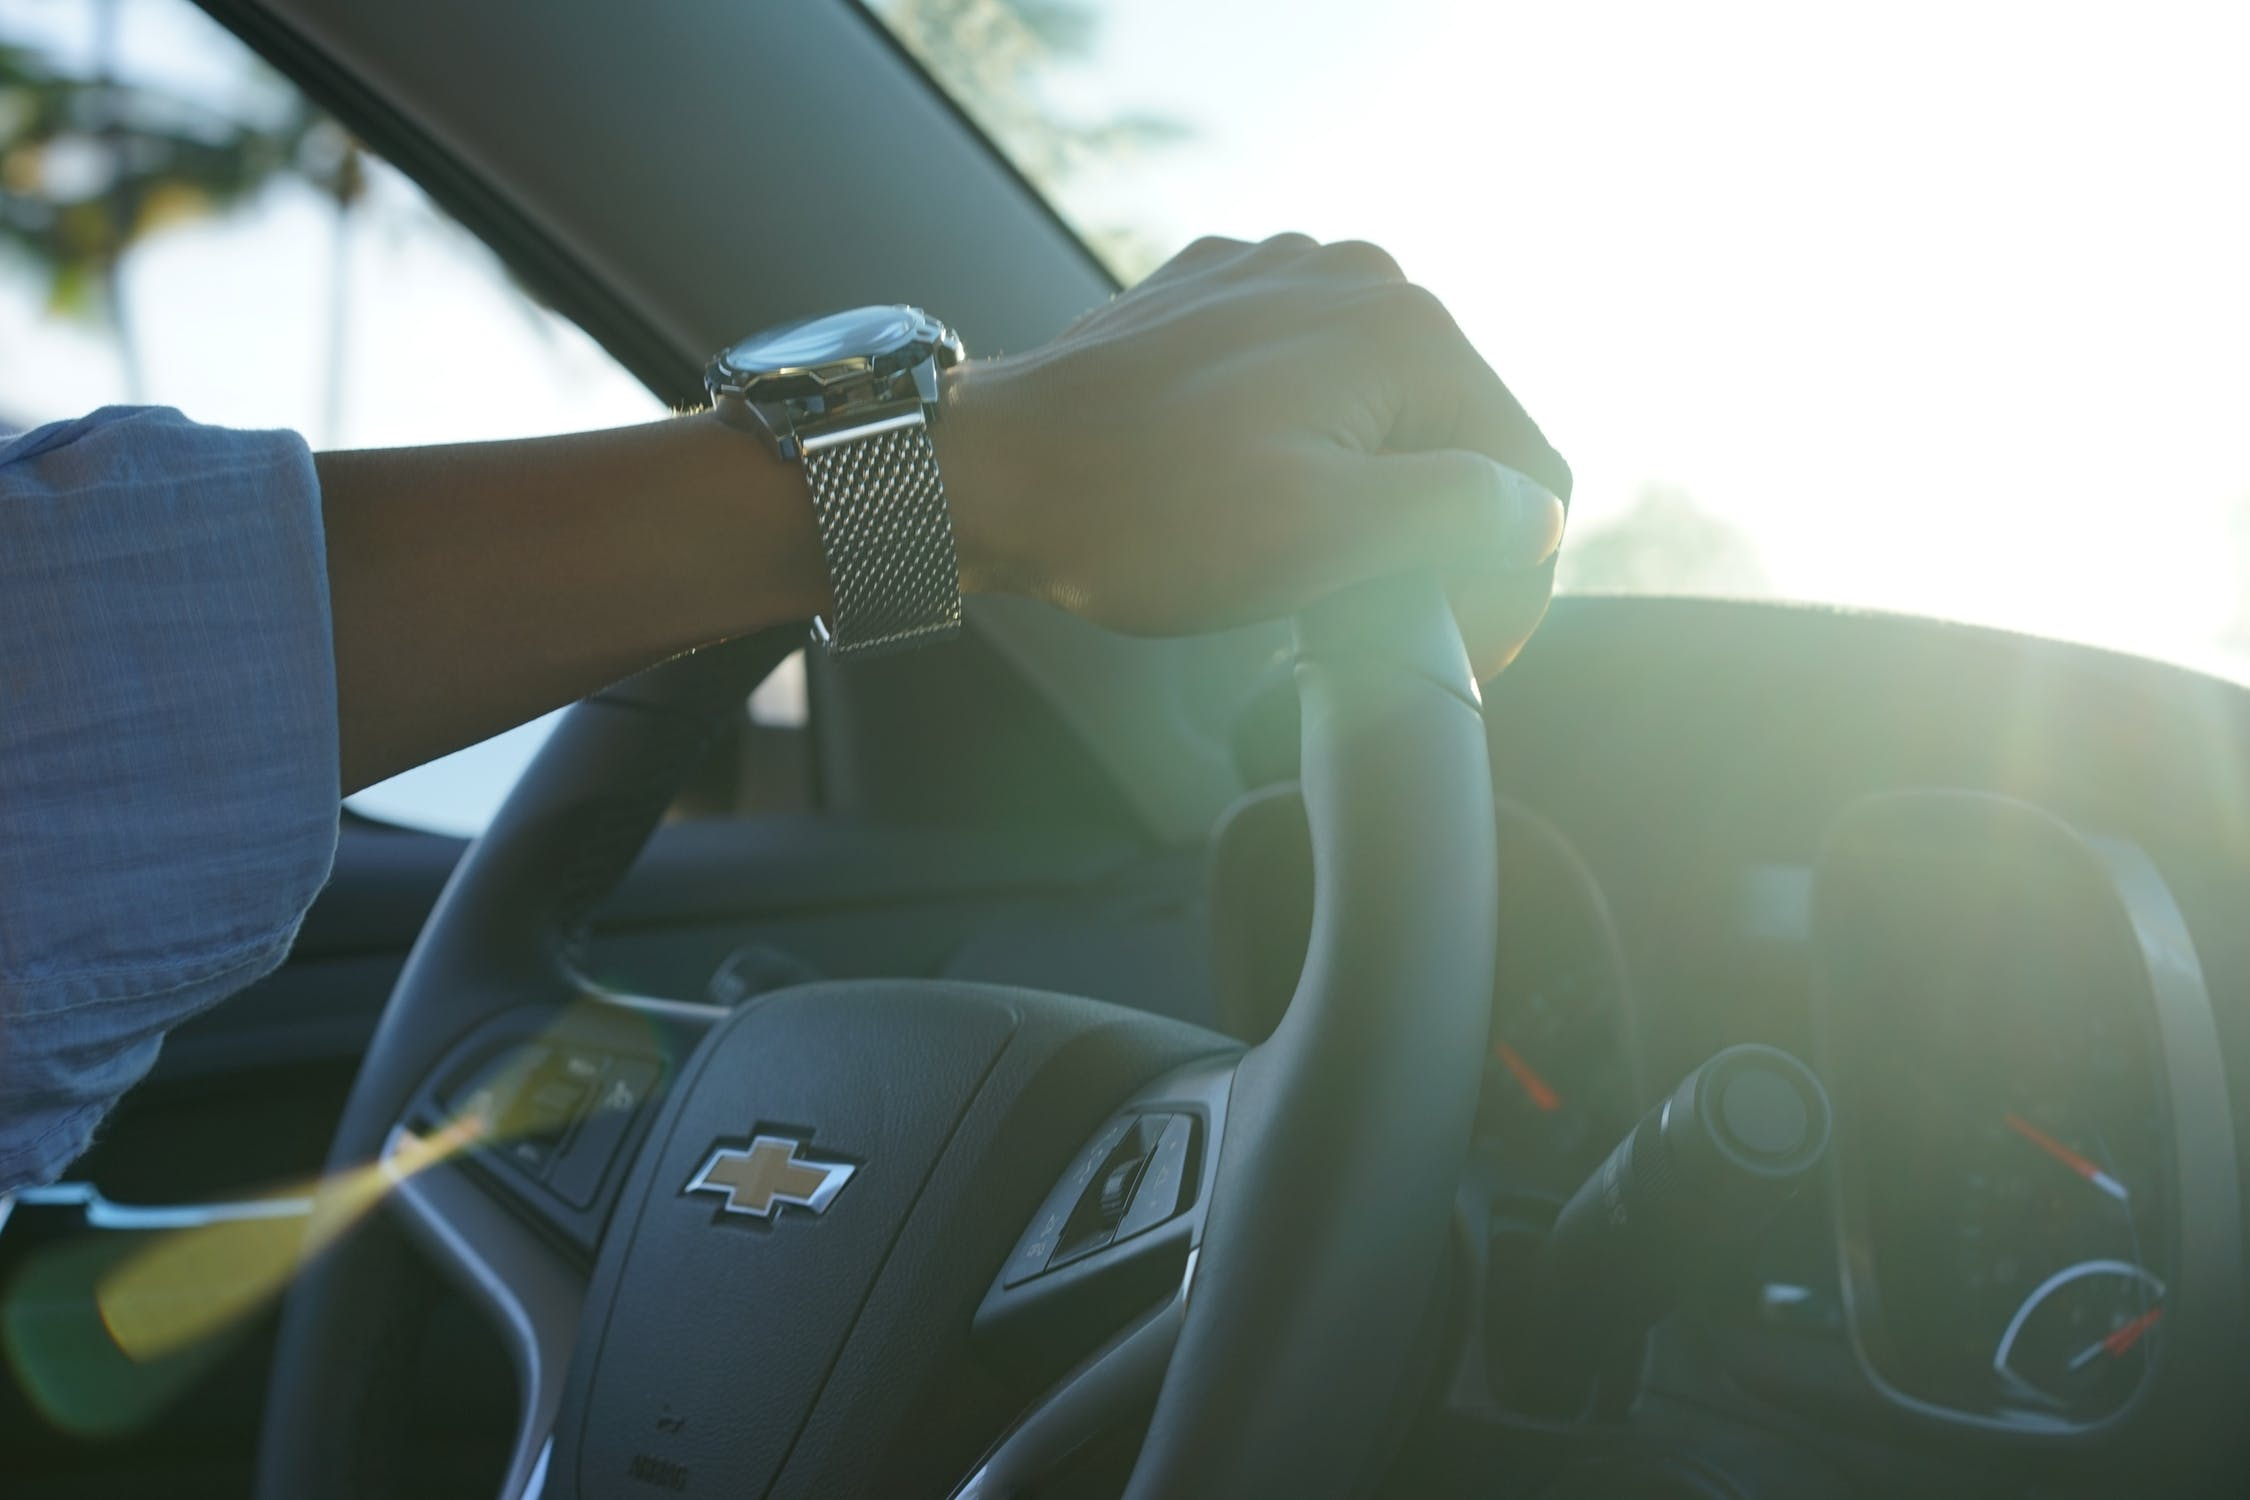 Are You Practicing Sun Safety and Protecting Your Skin While Driving? - Window Tinting Denver, Colorado